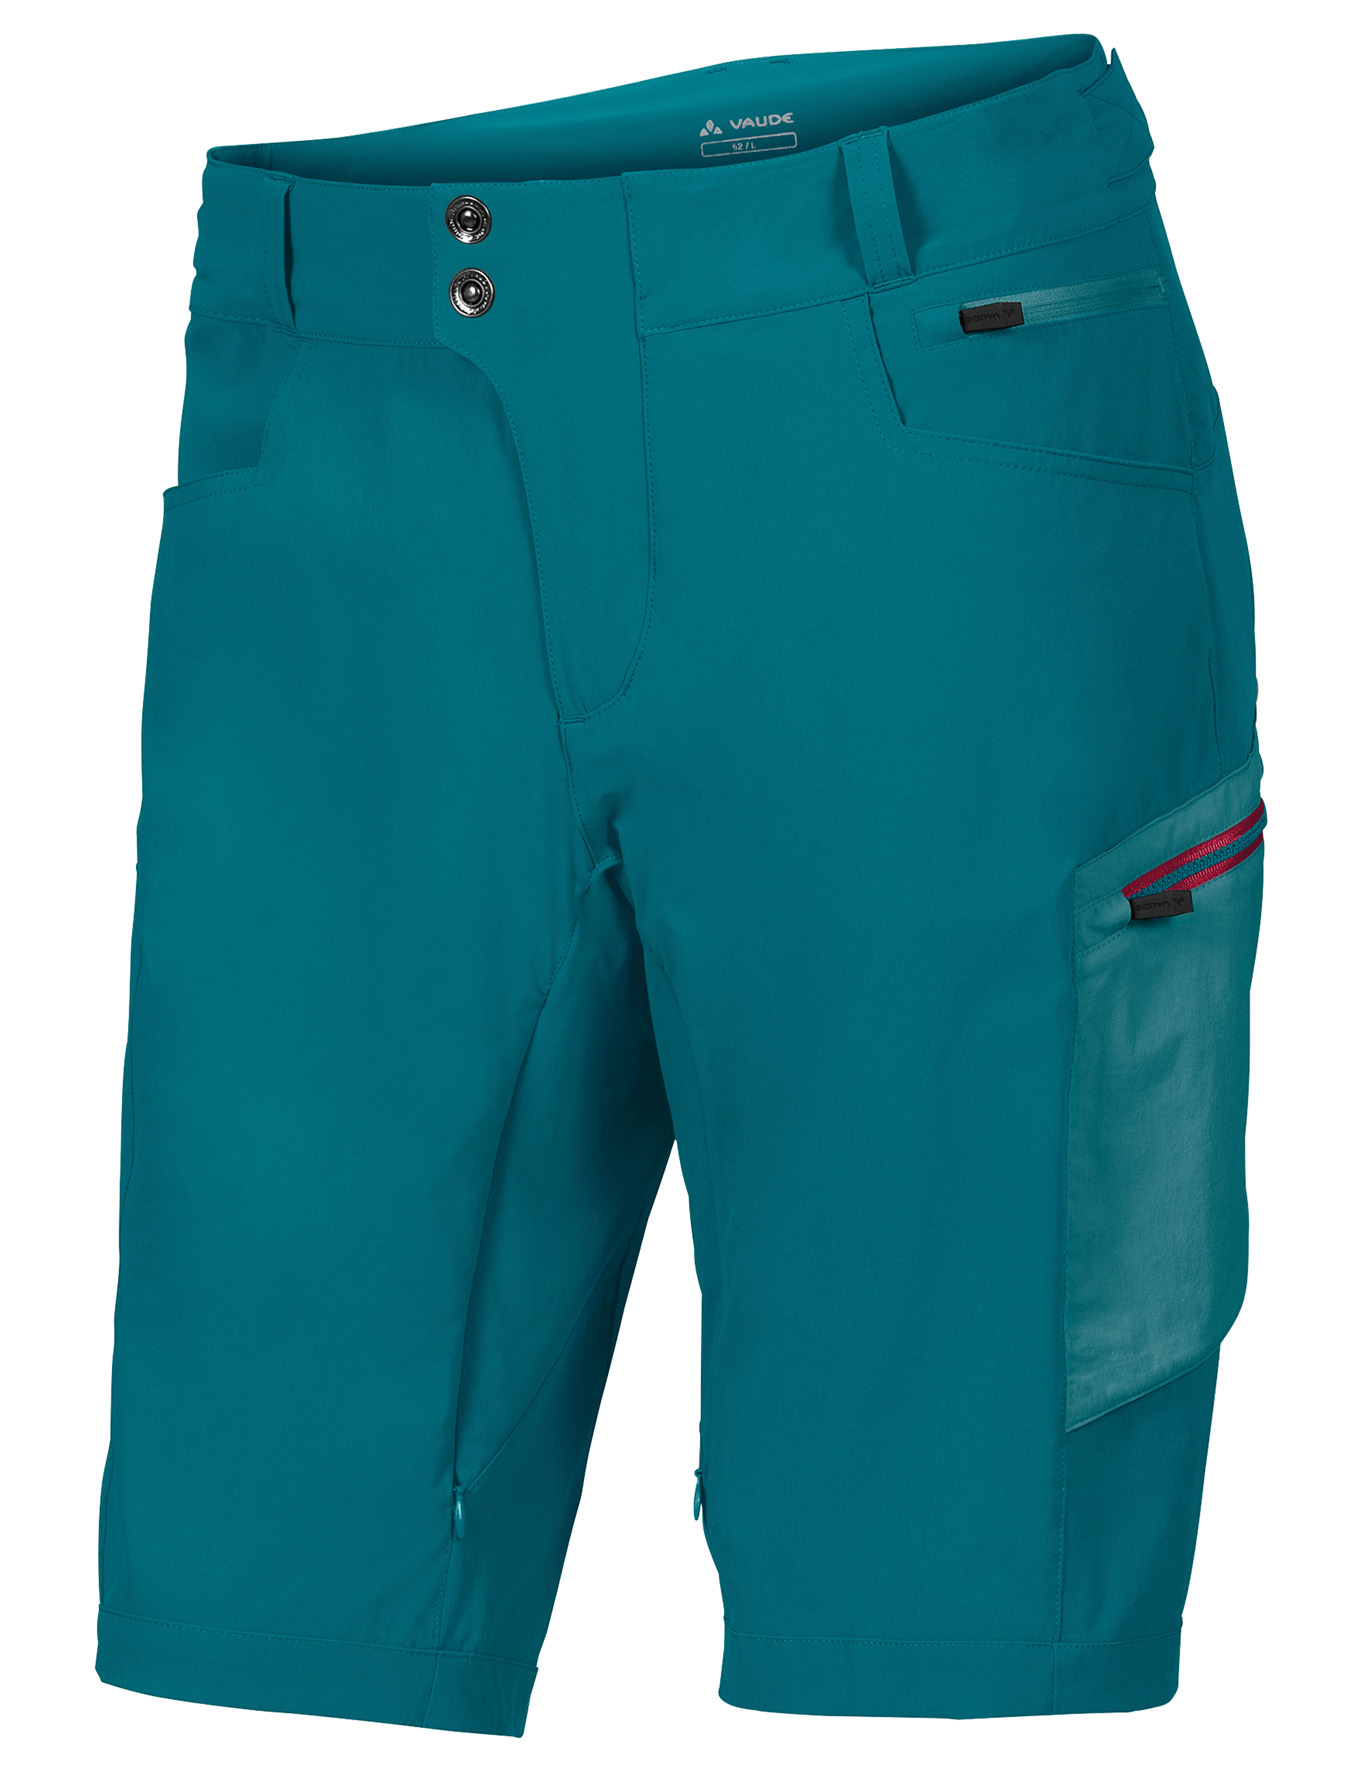 VAUDE Men´s Altissimo Shorts green spinel Größe L - schneider-sports